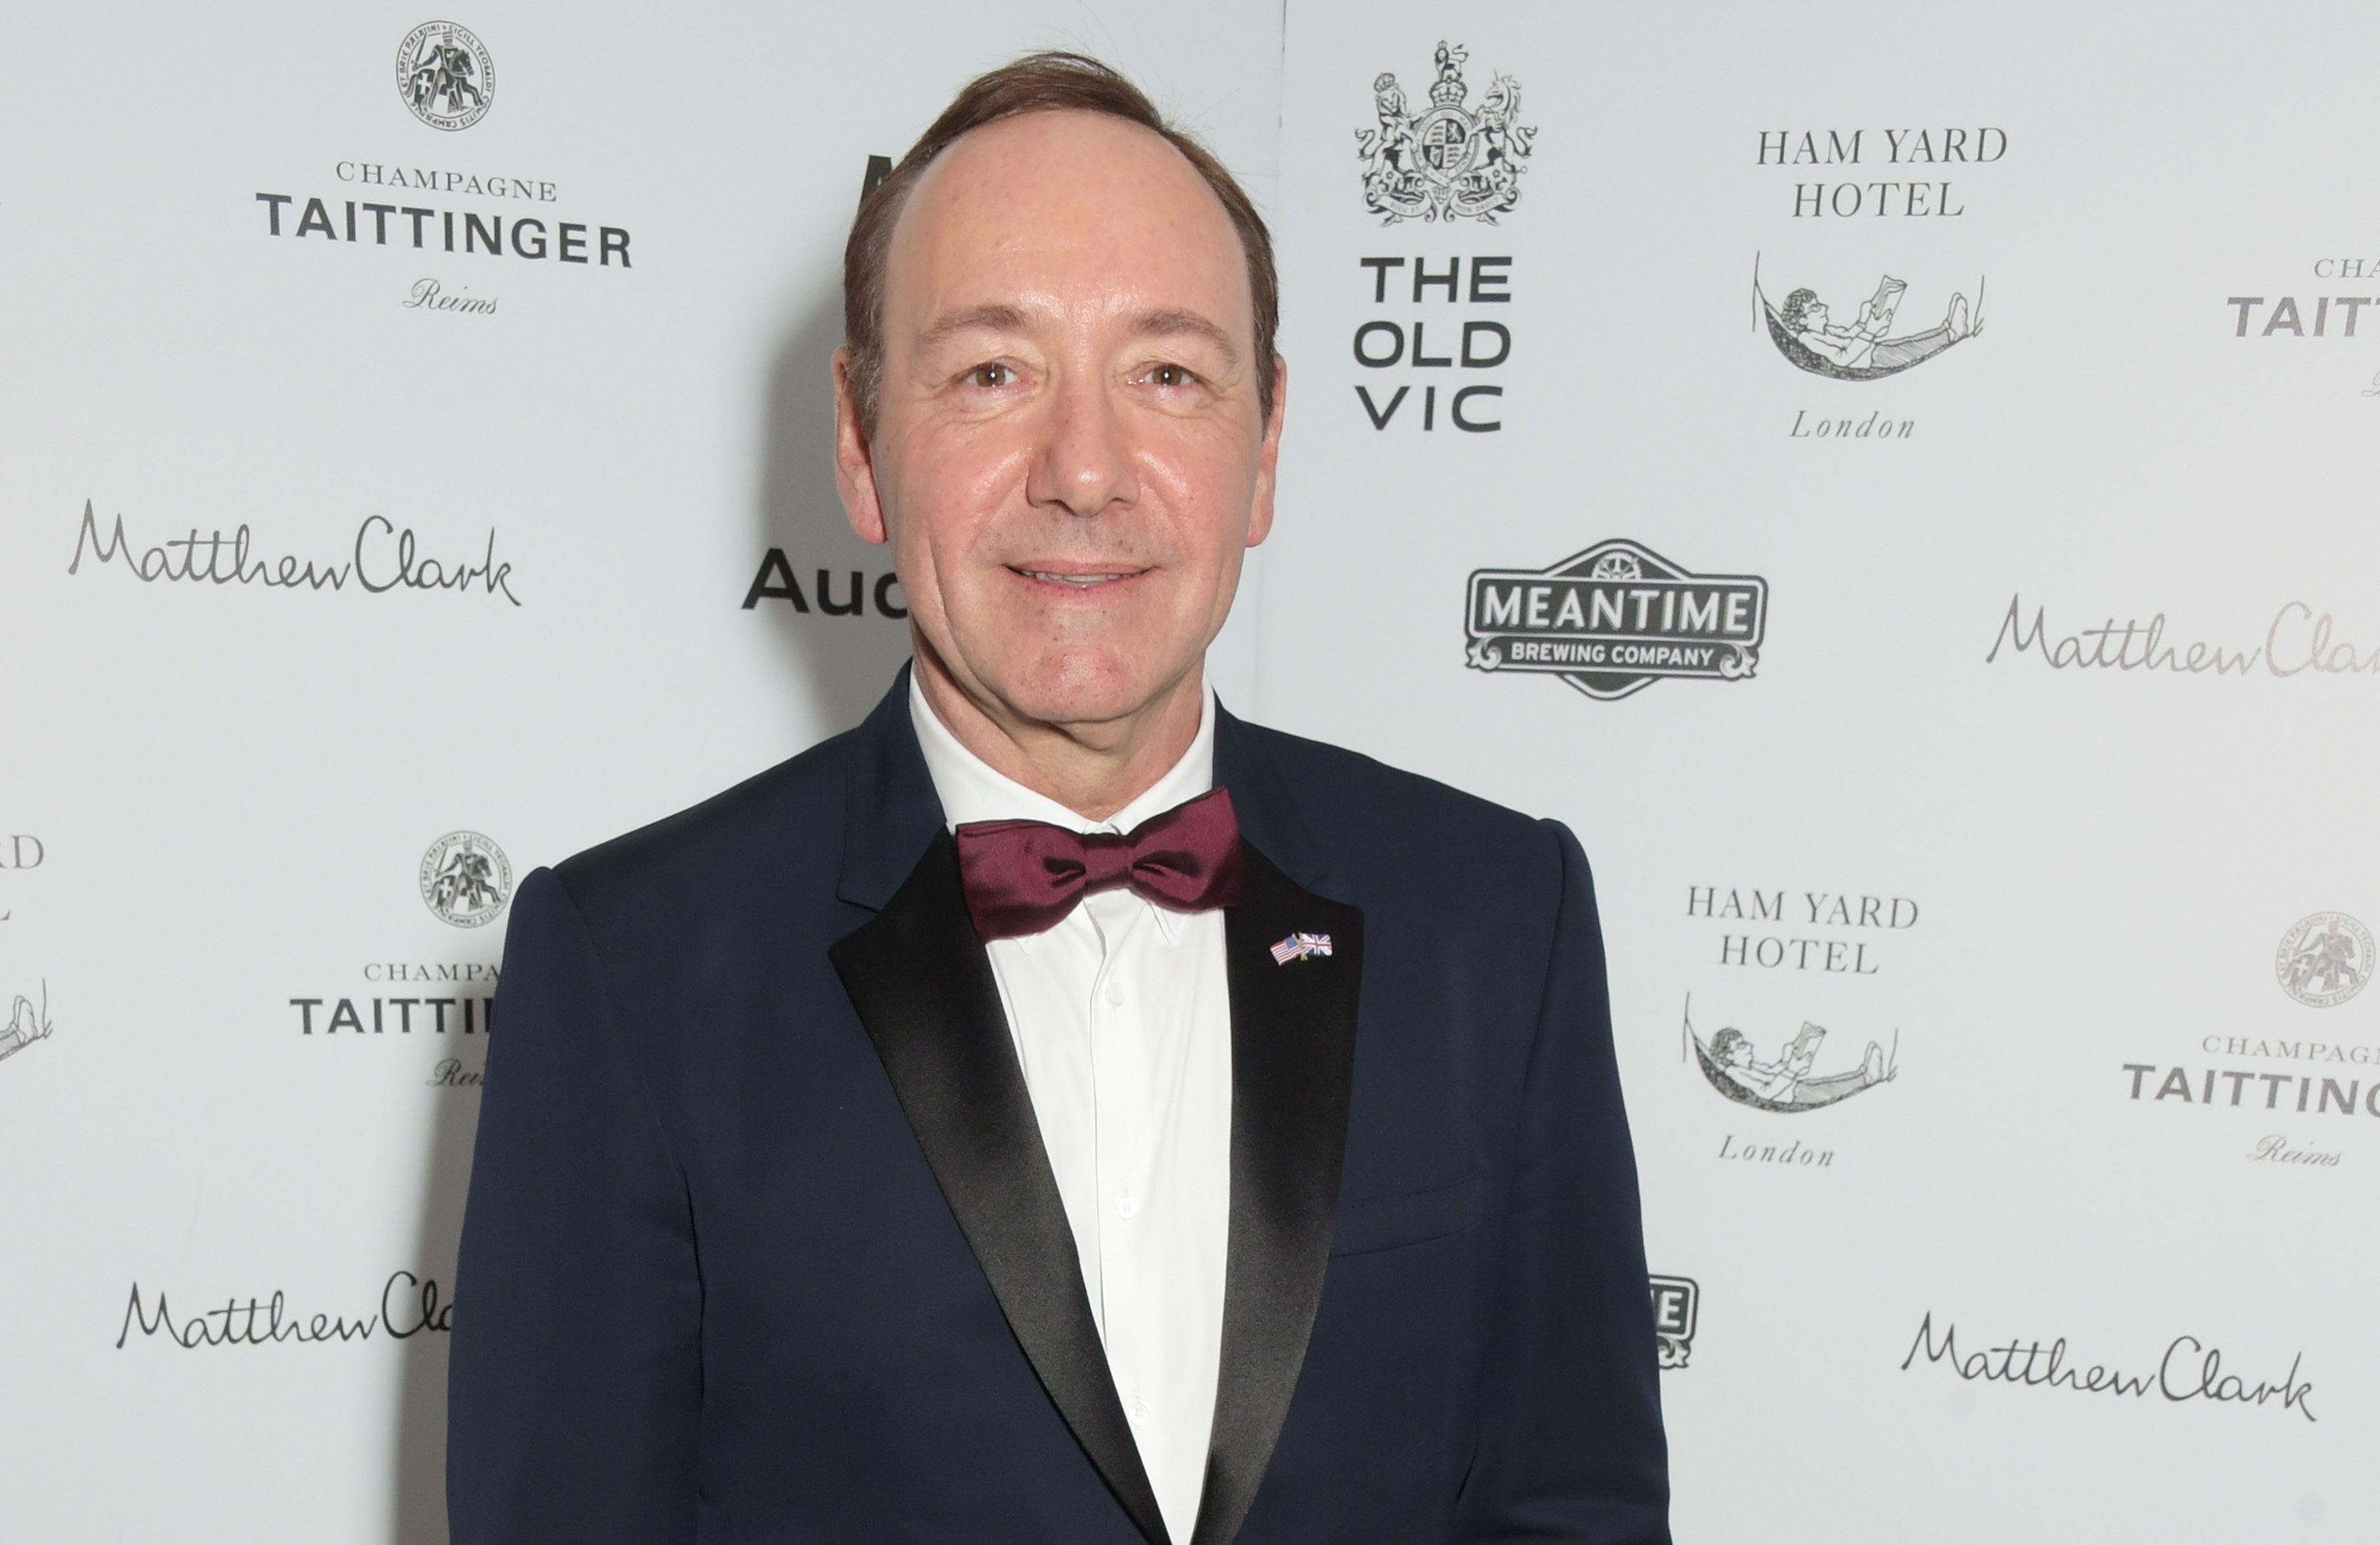 Former artistic director of The Old Vic Kevin Spacey at the After Party of The Old Vic's A Gala Celebration in Honour of Kevin Spacey on April 19, 2015 in London, England